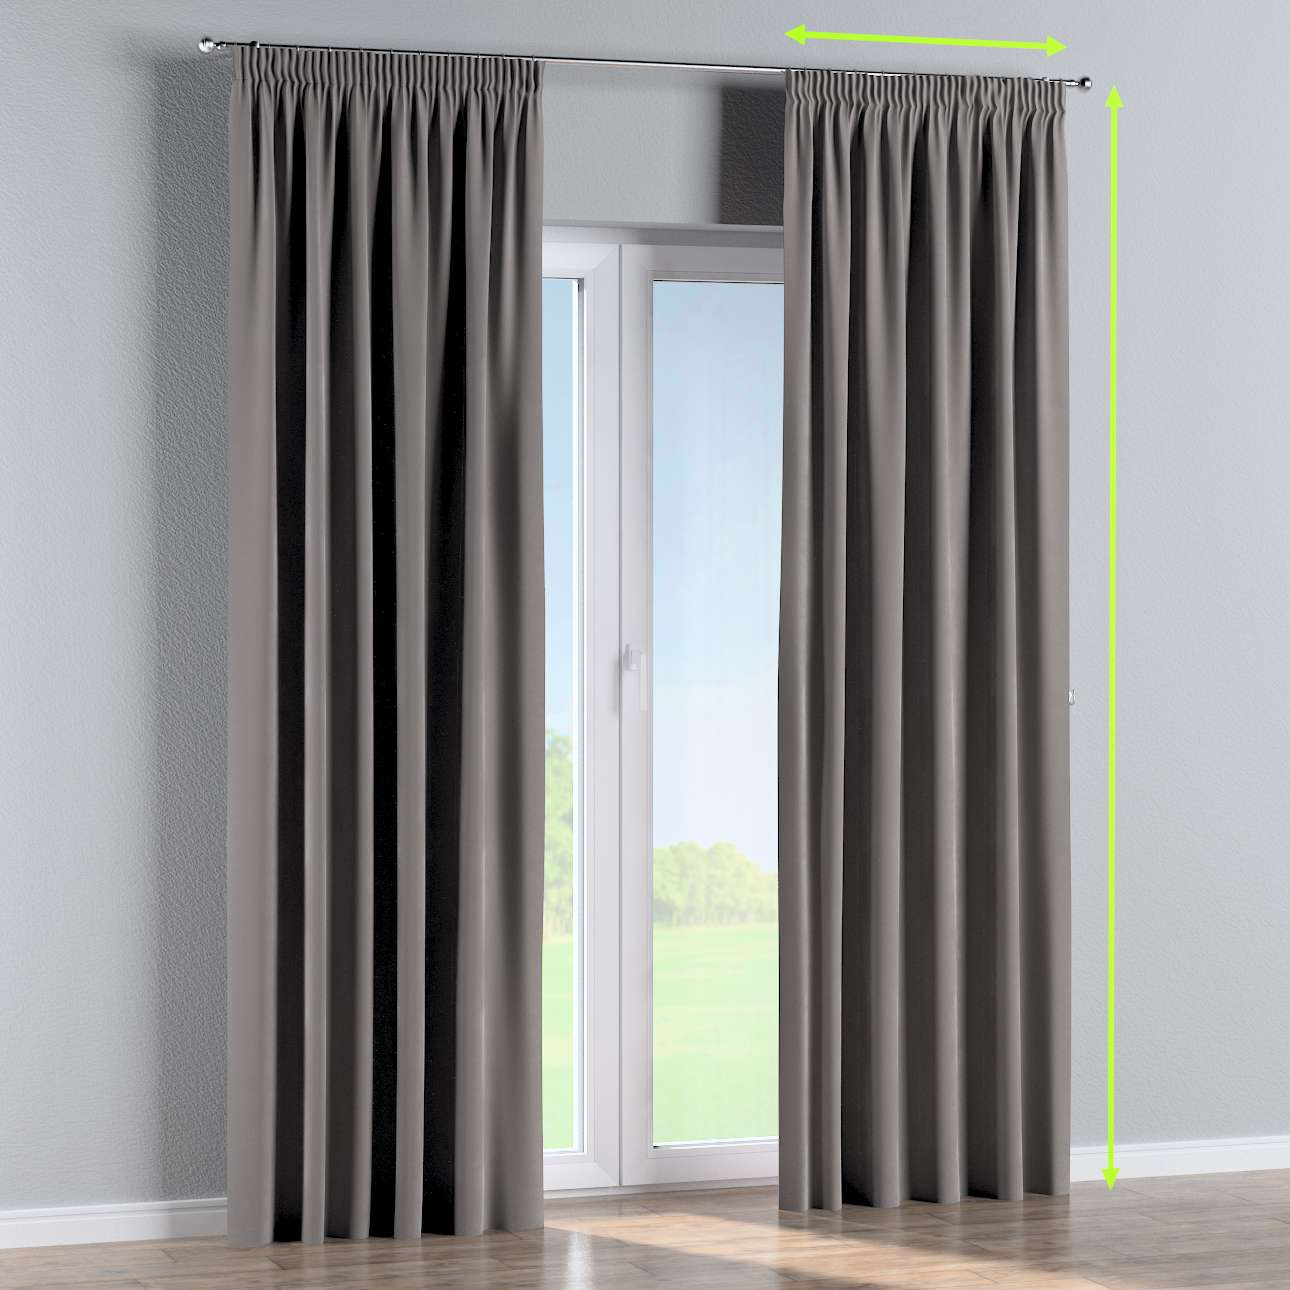 Pencil pleat lined curtains in collection Velvet, fabric: 704-11